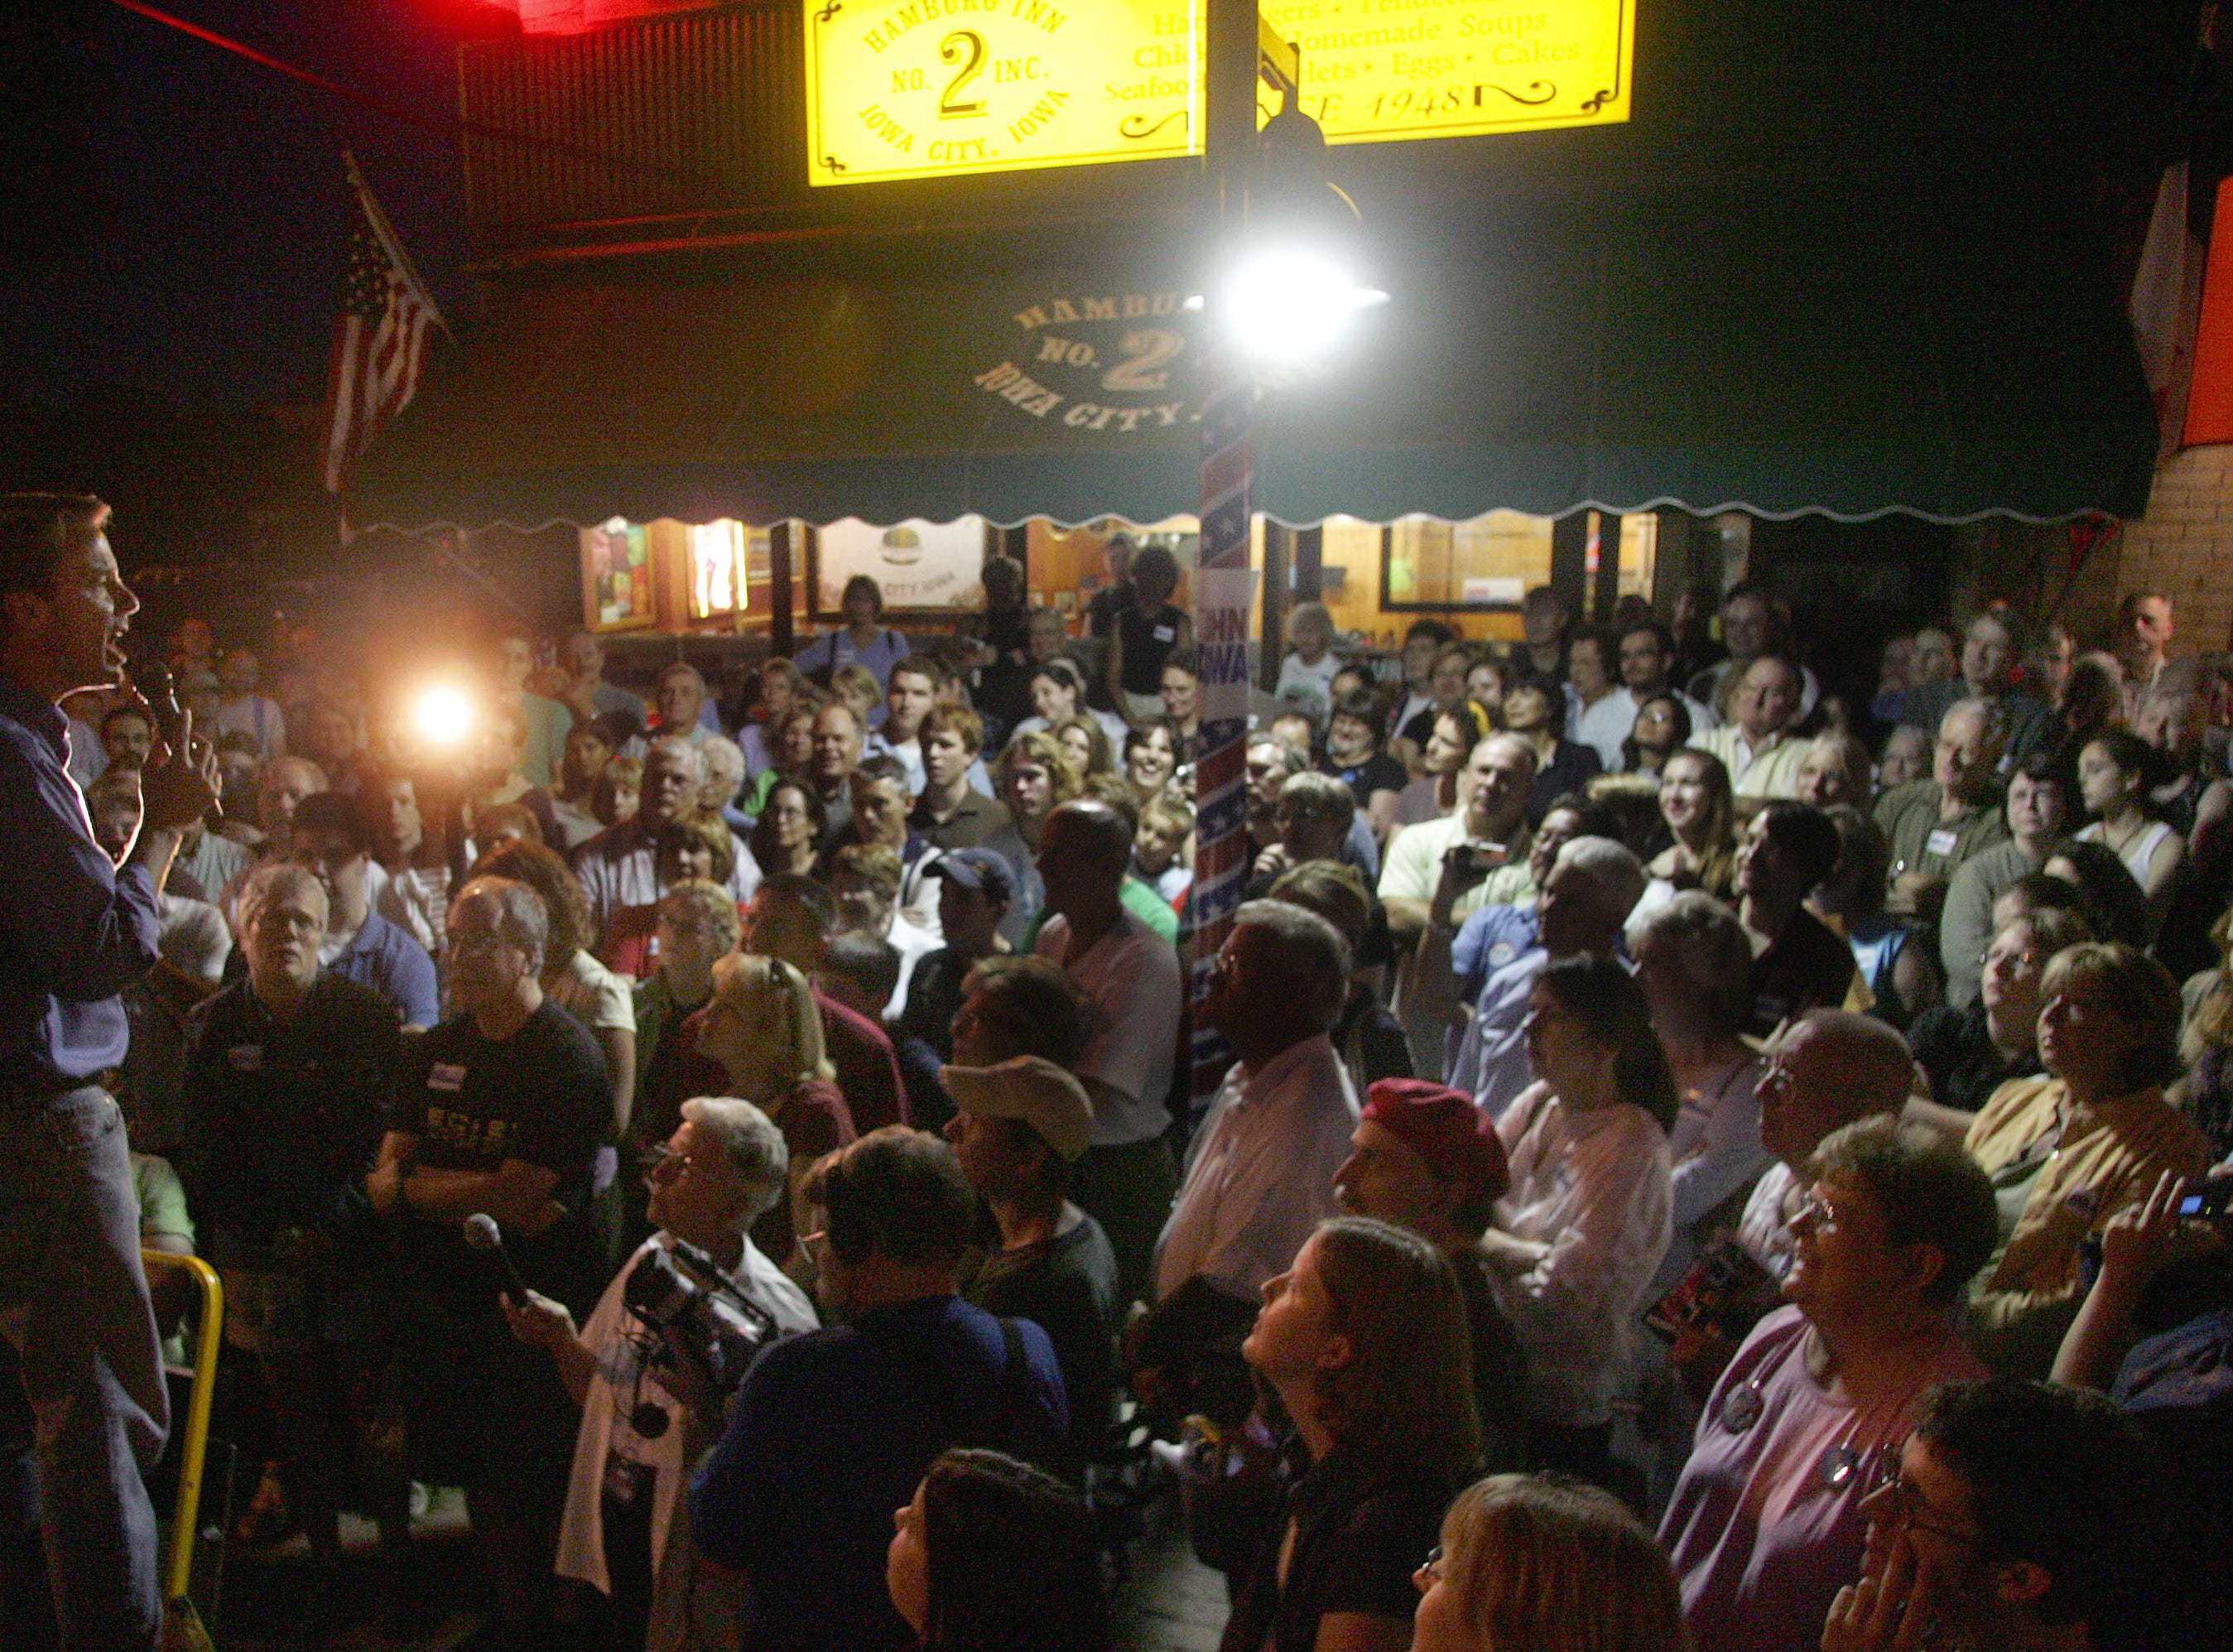 Former U.S. Senator and Democratic Presidential hopeful John Edwards spoke to a group of a few hundred gathered in front of Iowa City landmark the Hamburg Inn No. 2 Friday night August 17, 2007.